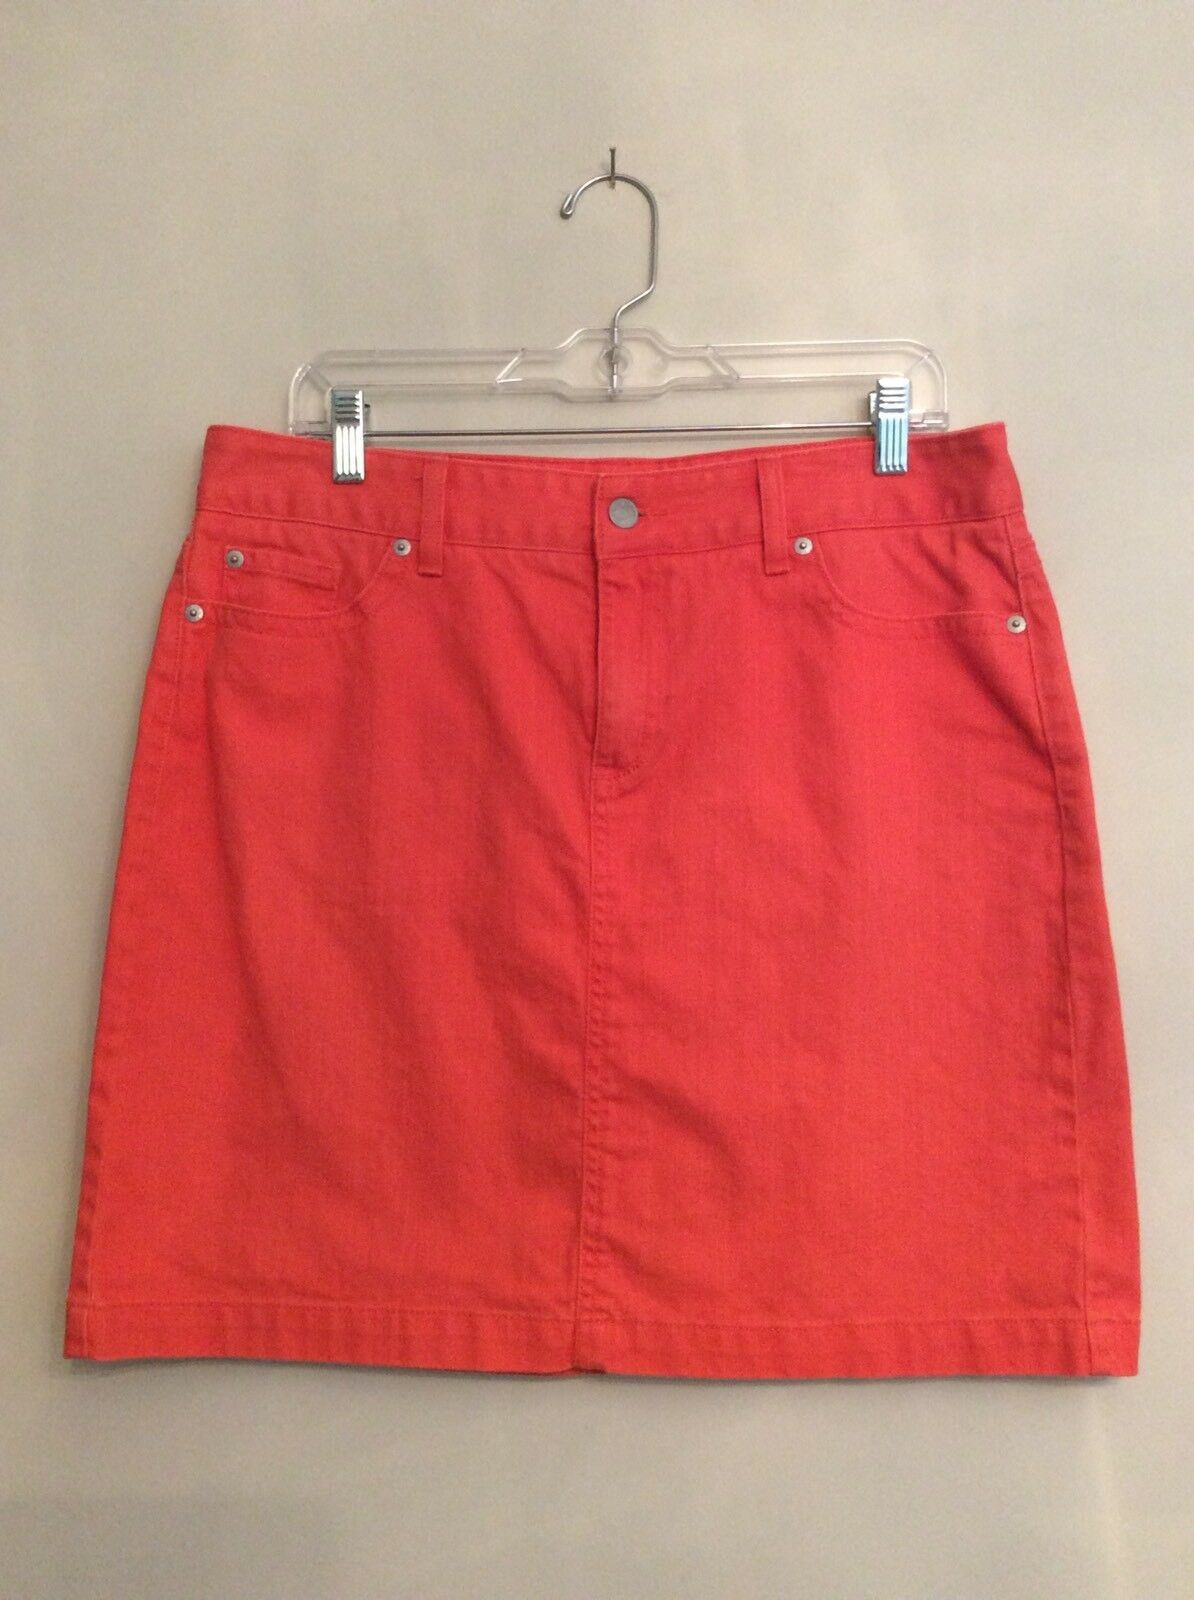 L.L. BEAN 14 PETITE Coral FAVORITE FIT Straight DENIM SKIRT Large Jean 14P